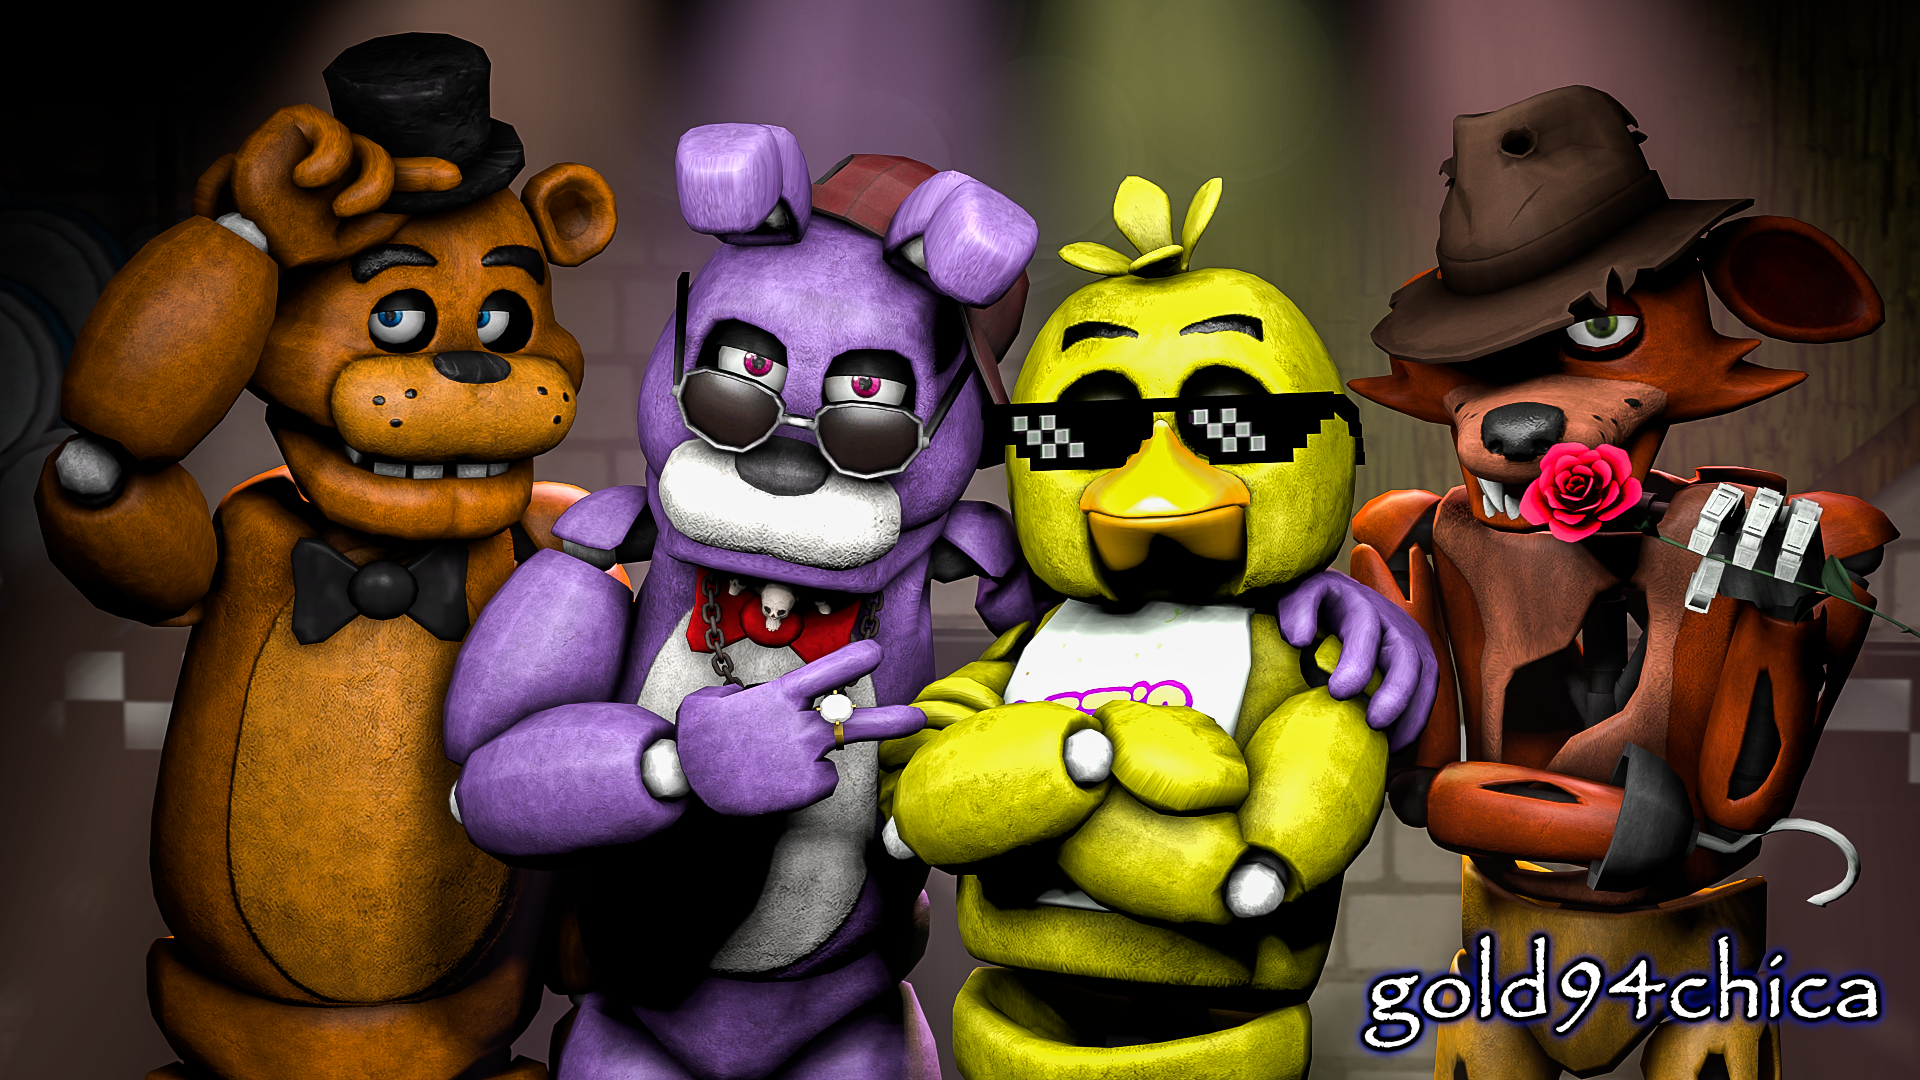 Epic Friends Forever (FNAF SFM Wallpaper) by gold94chica.deviantart.com on @DeviantArt